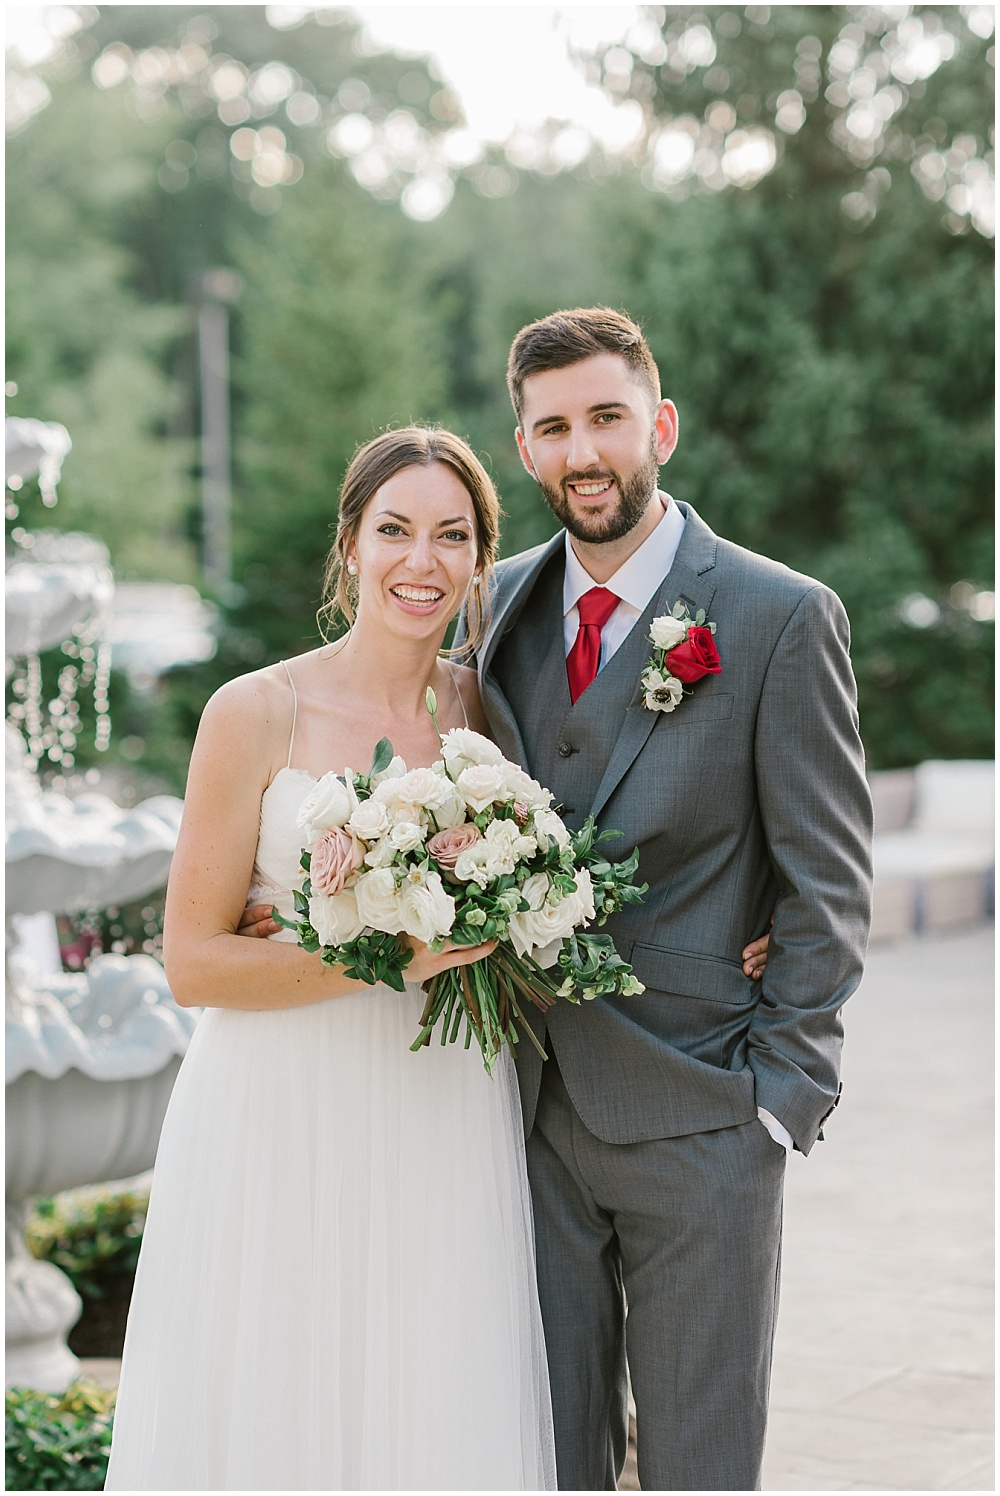 Bride and groom garden portraits with a bridal bouquet made up of white and soft blush blooms Fall garden-inspired wedding at the Ritz Charles Garden Pavilion in Carmel, Indiana | Jessica Dum Wedding Coordination